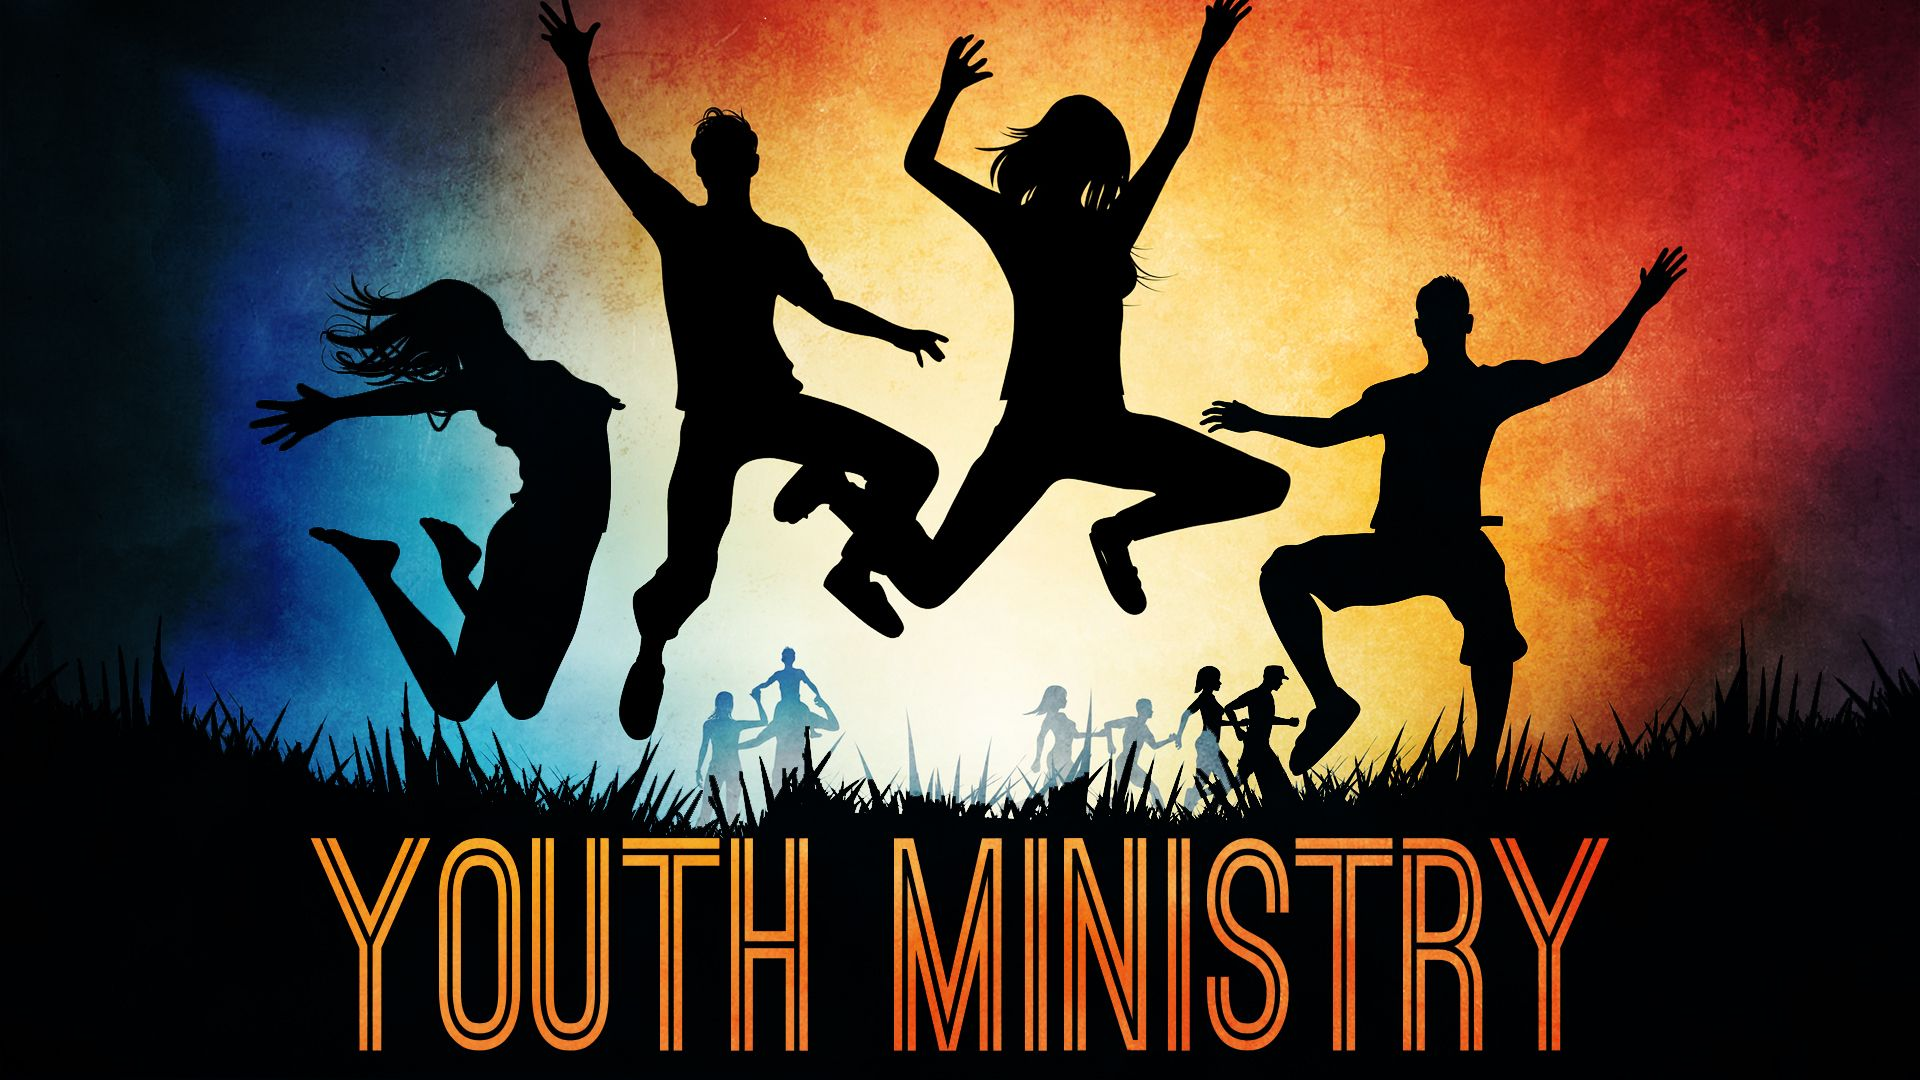 youthministry.jpg